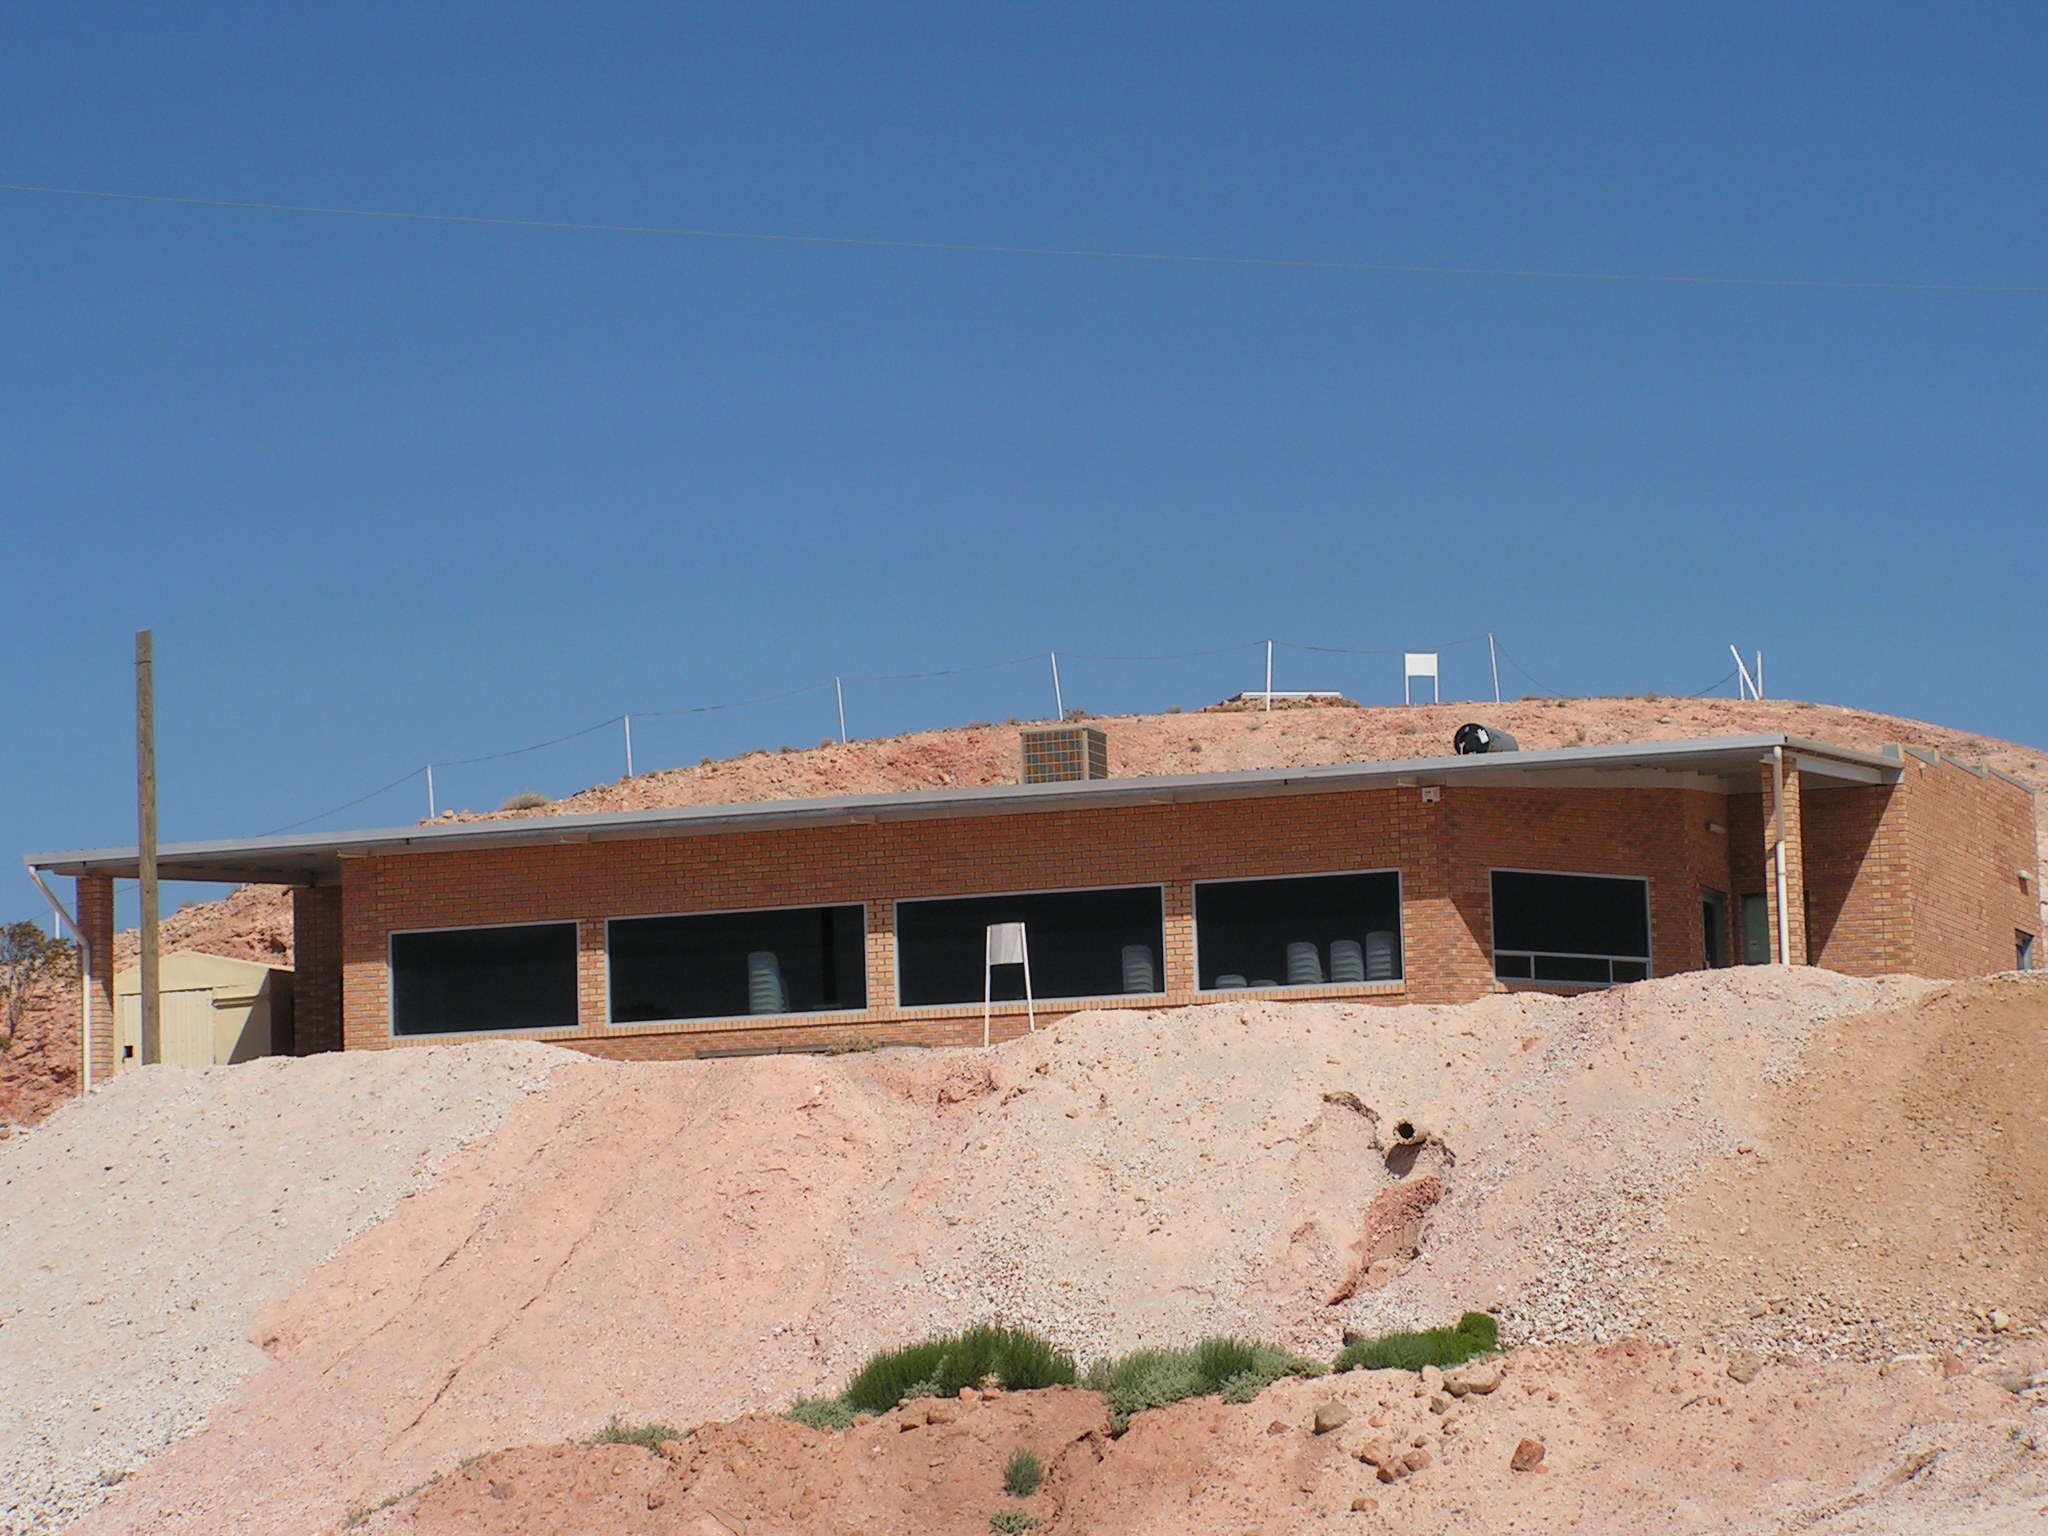 About the Coober Pedy Opal Fields Golf Club